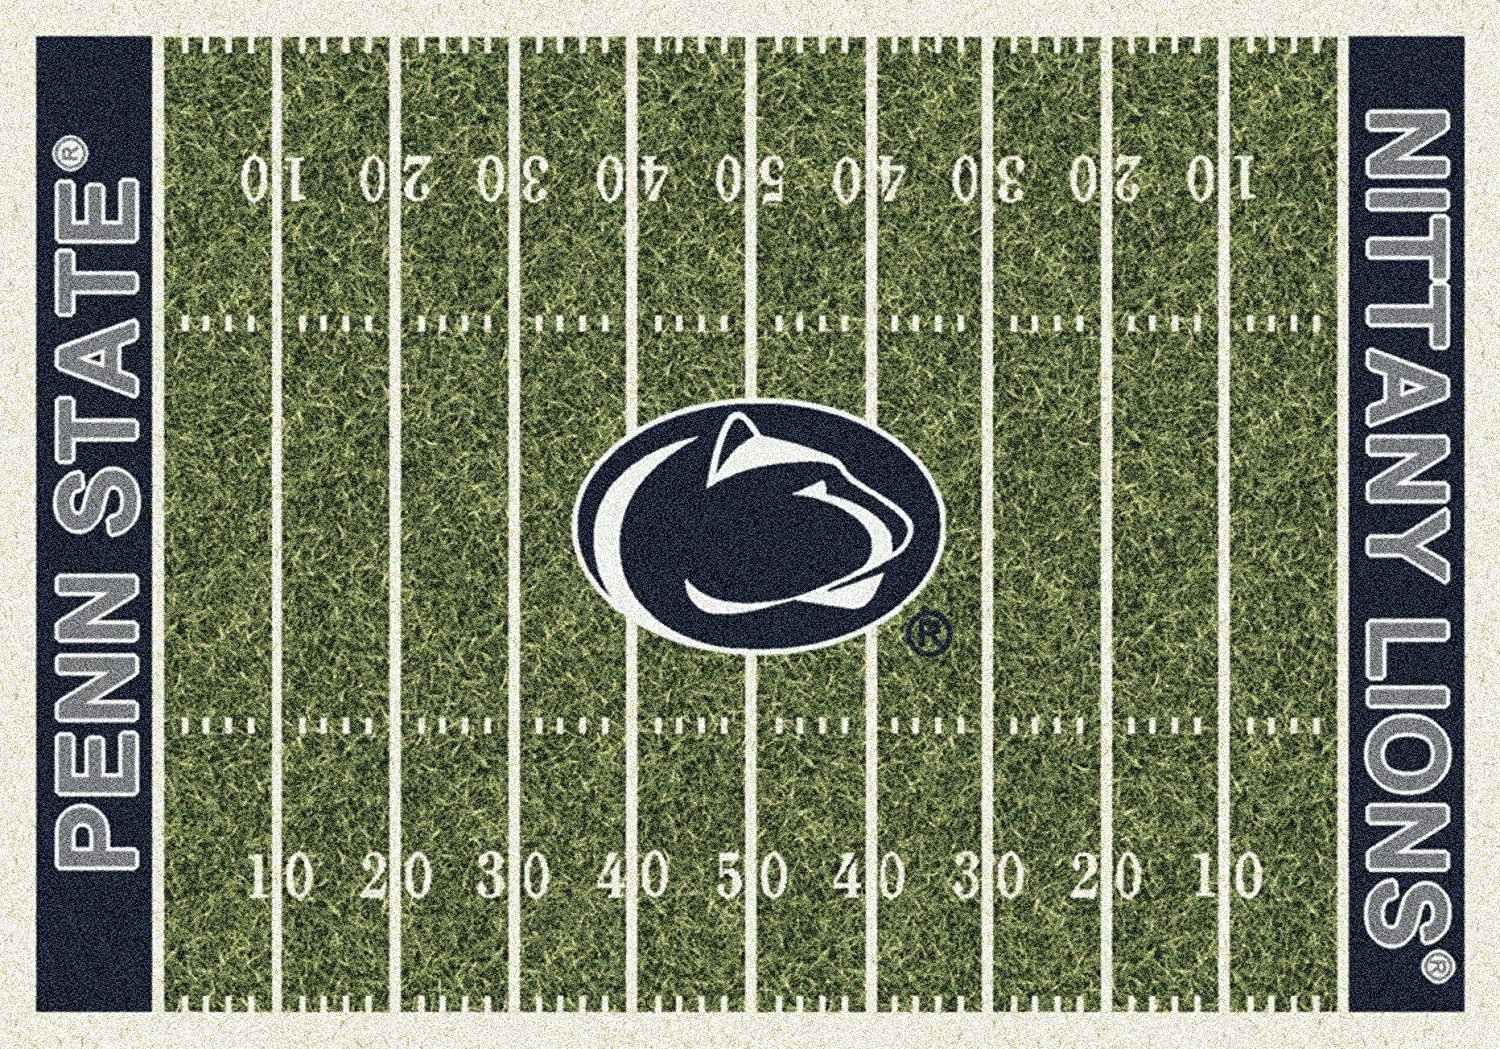 Penn State Chicago Mall San Antonio Mall Home Field Rug Lions End Nittany Zone Col